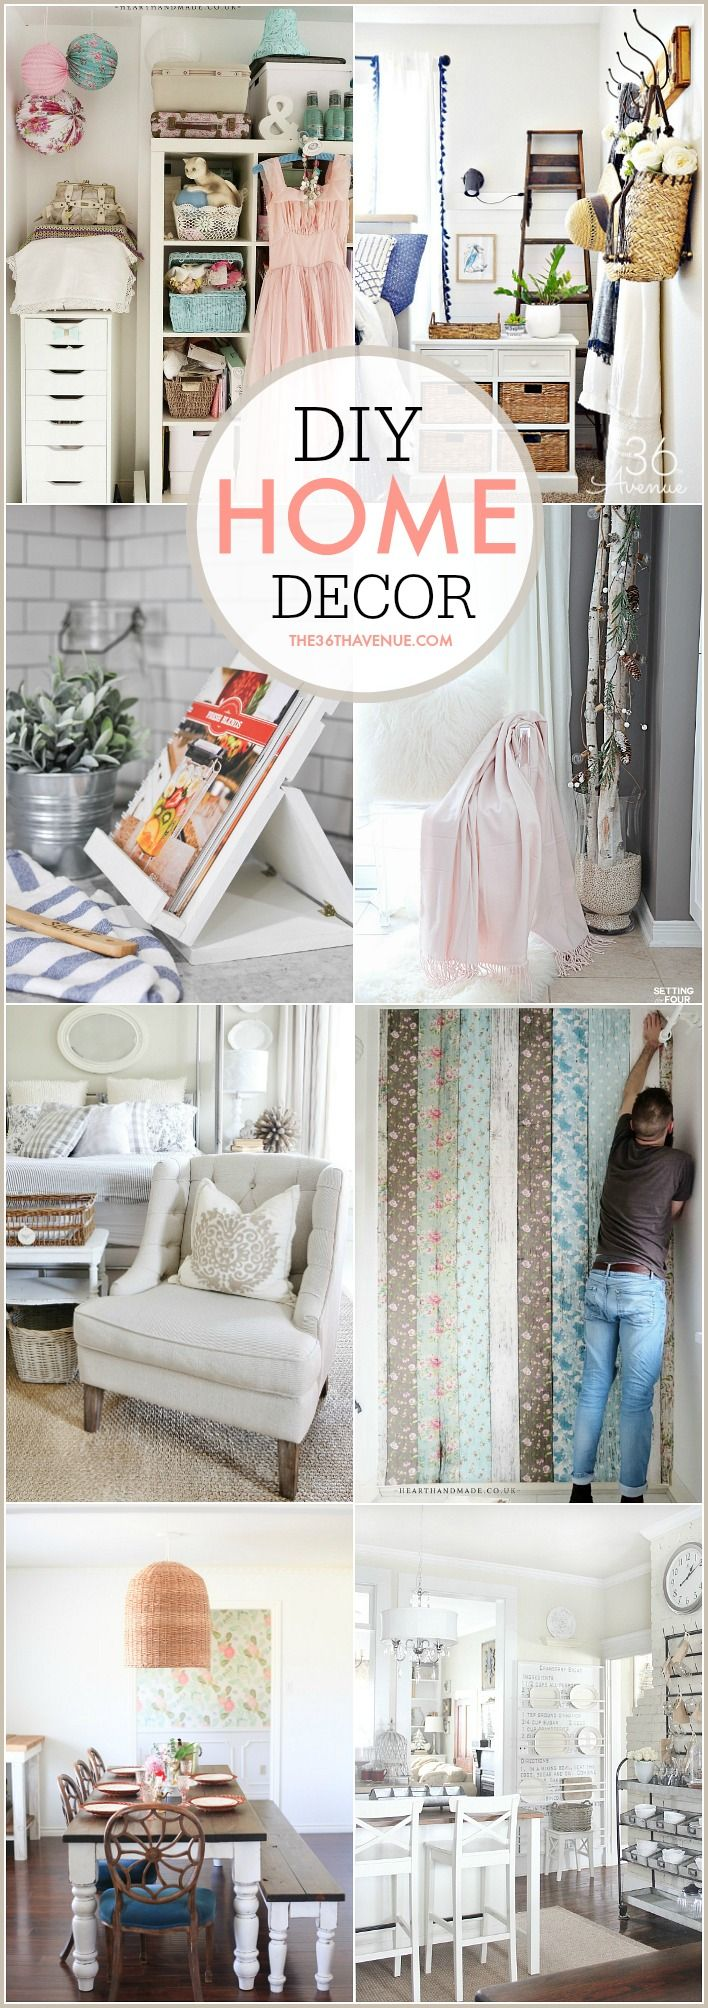 Beautiful DIY Home Decor Ideas that you can do. Great and easy ways to decorate your home on a budget.